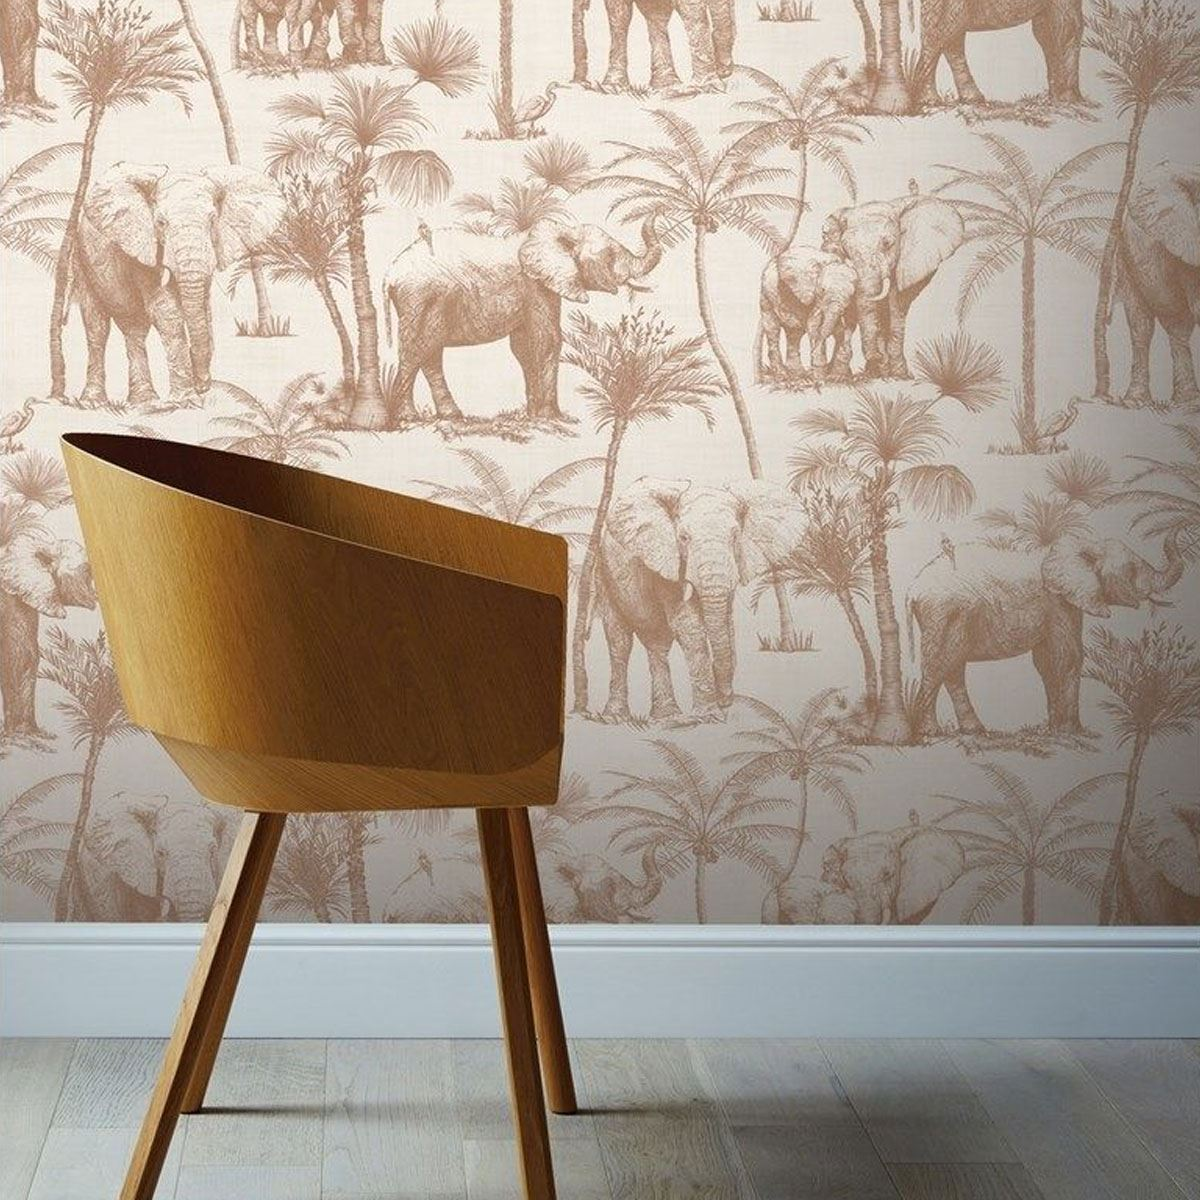 Elephant-Grove-Wallpaper-Jungle-Tropical-Palm-Tree-Bird-Paste-The-Wall-Arthouse thumbnail 18